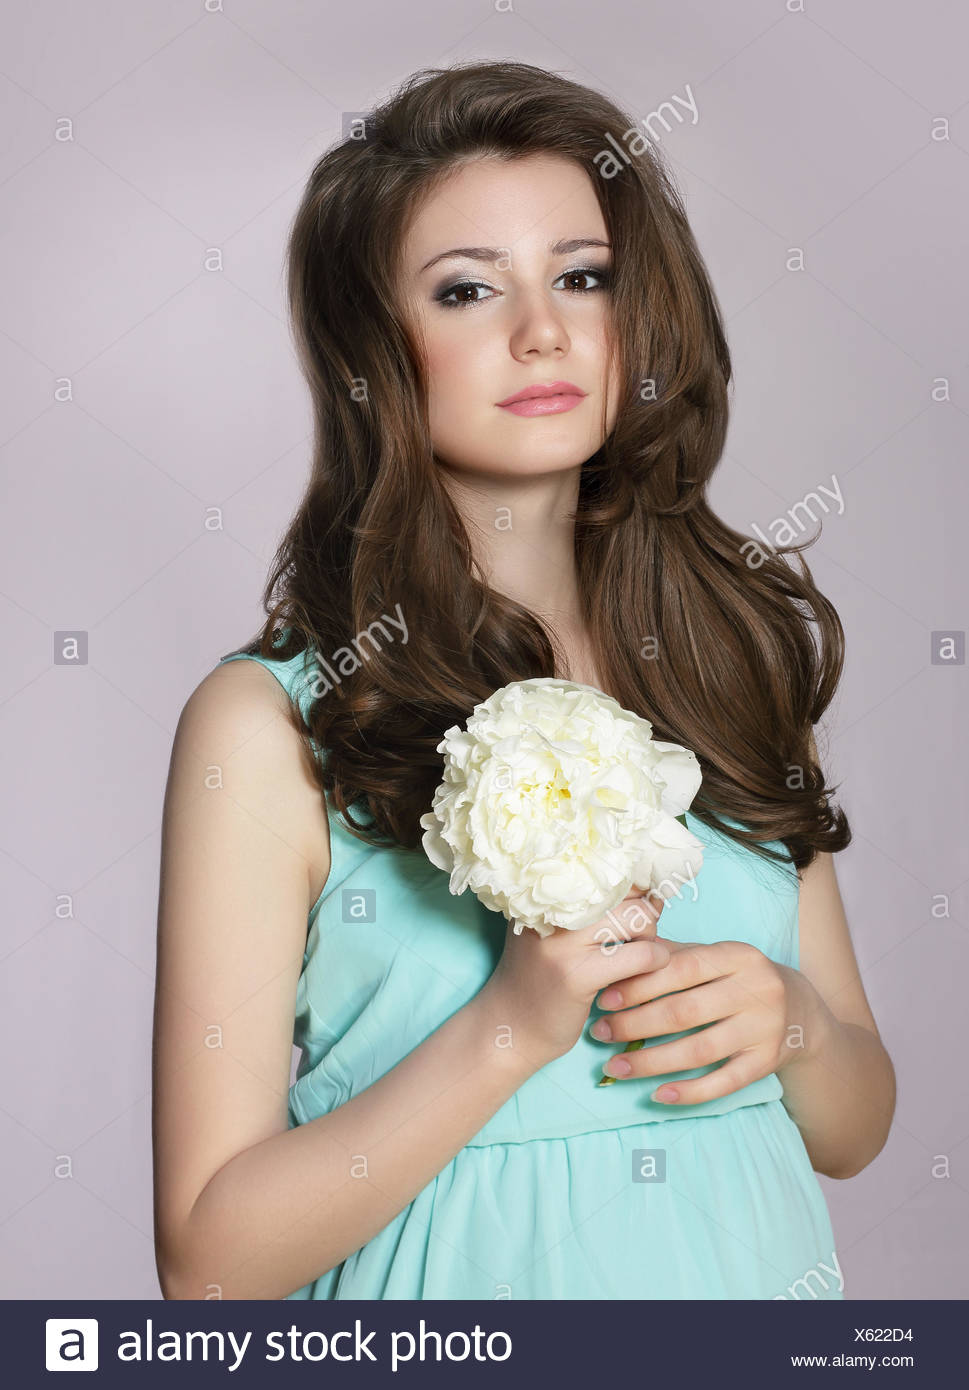 Very young teen girl flower